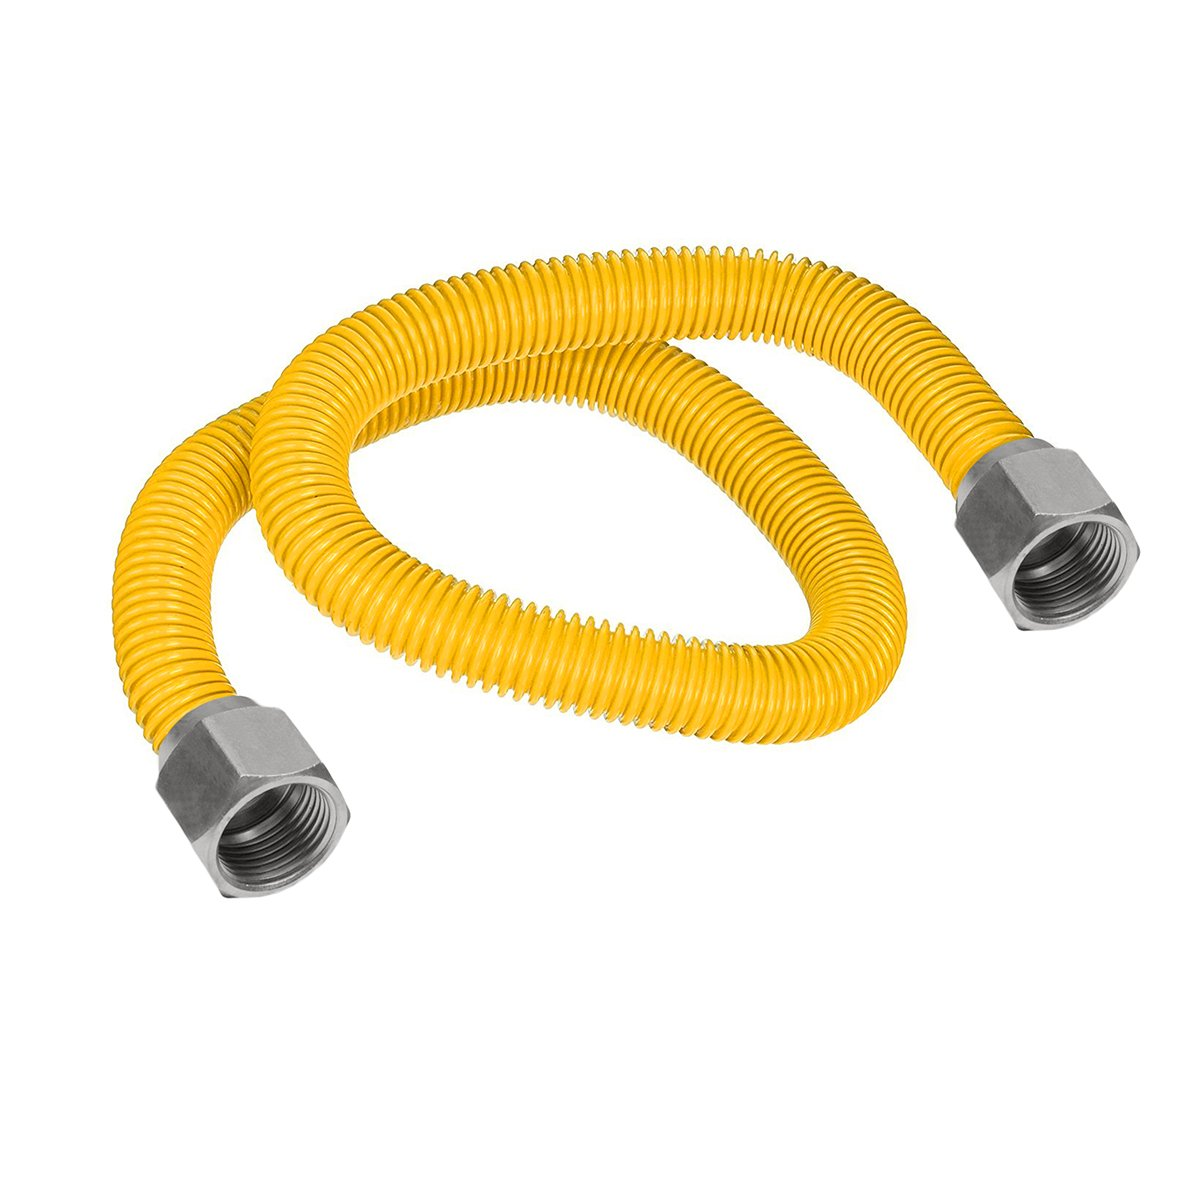 Flextron FTGC-YC14-48 46'' Flexible Epoxy Coated Gas Line Connector with 3/8'' Outer Diameter and Nut Fittings, Yellow/Stainless Steel